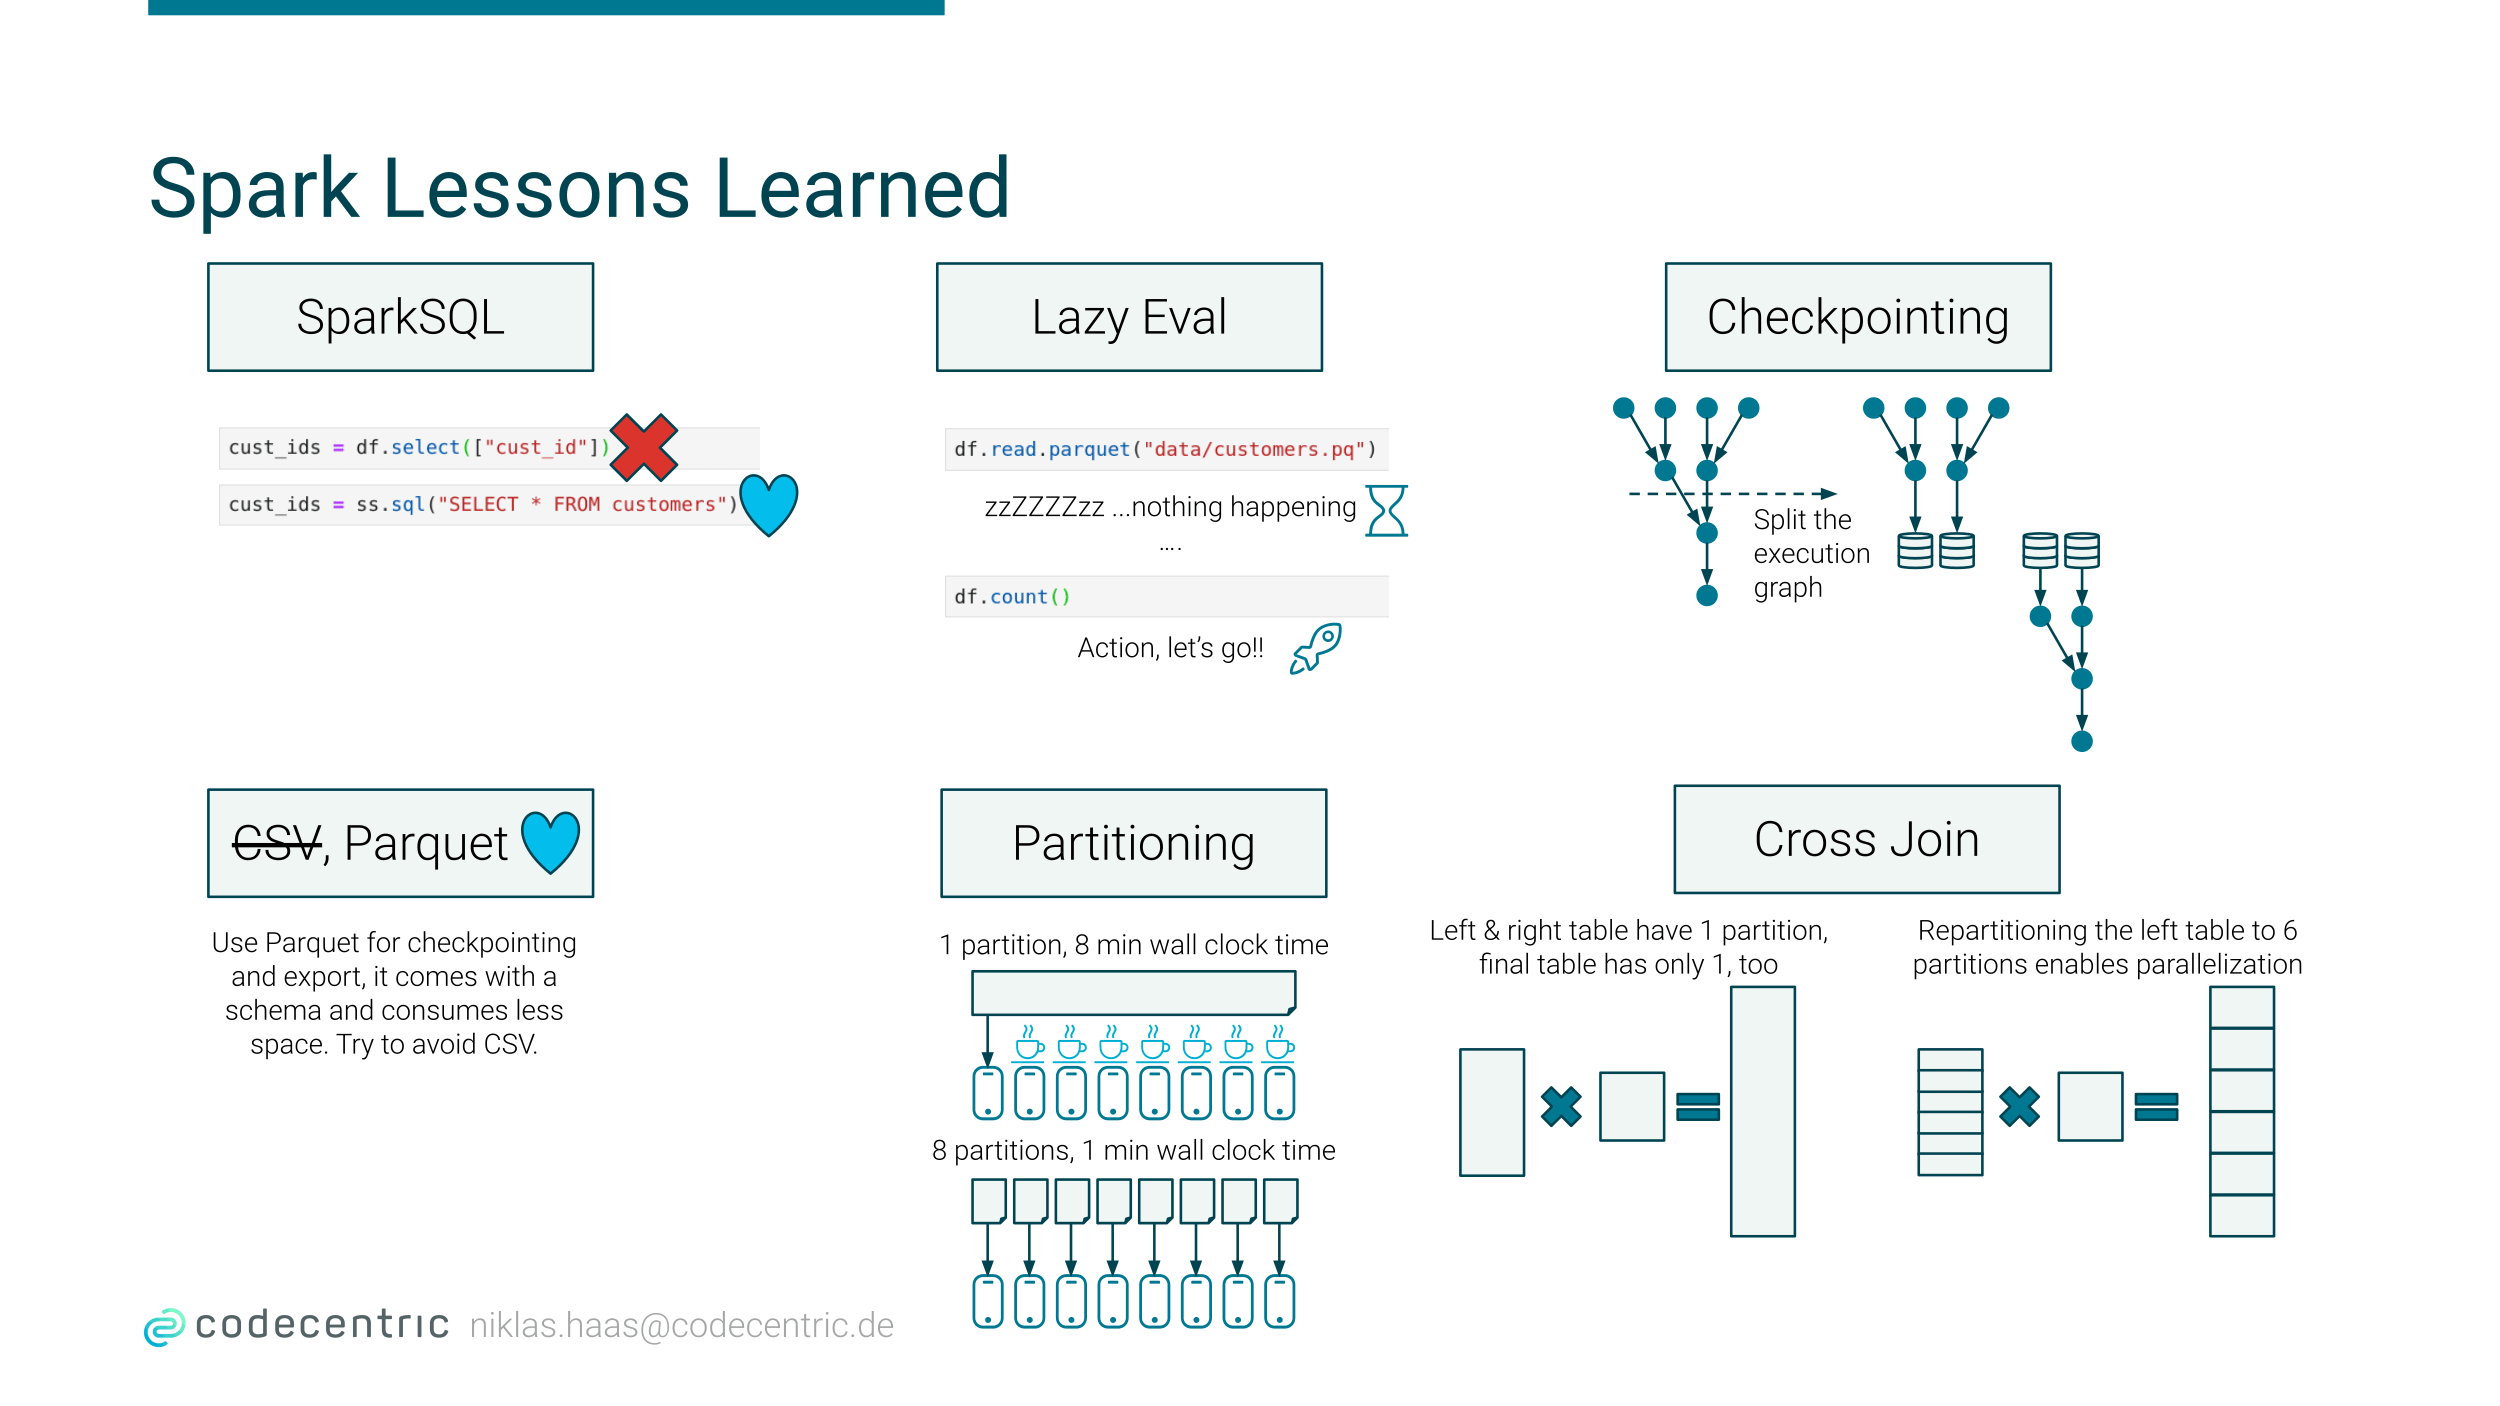 Lessons Learned Overview Diagram